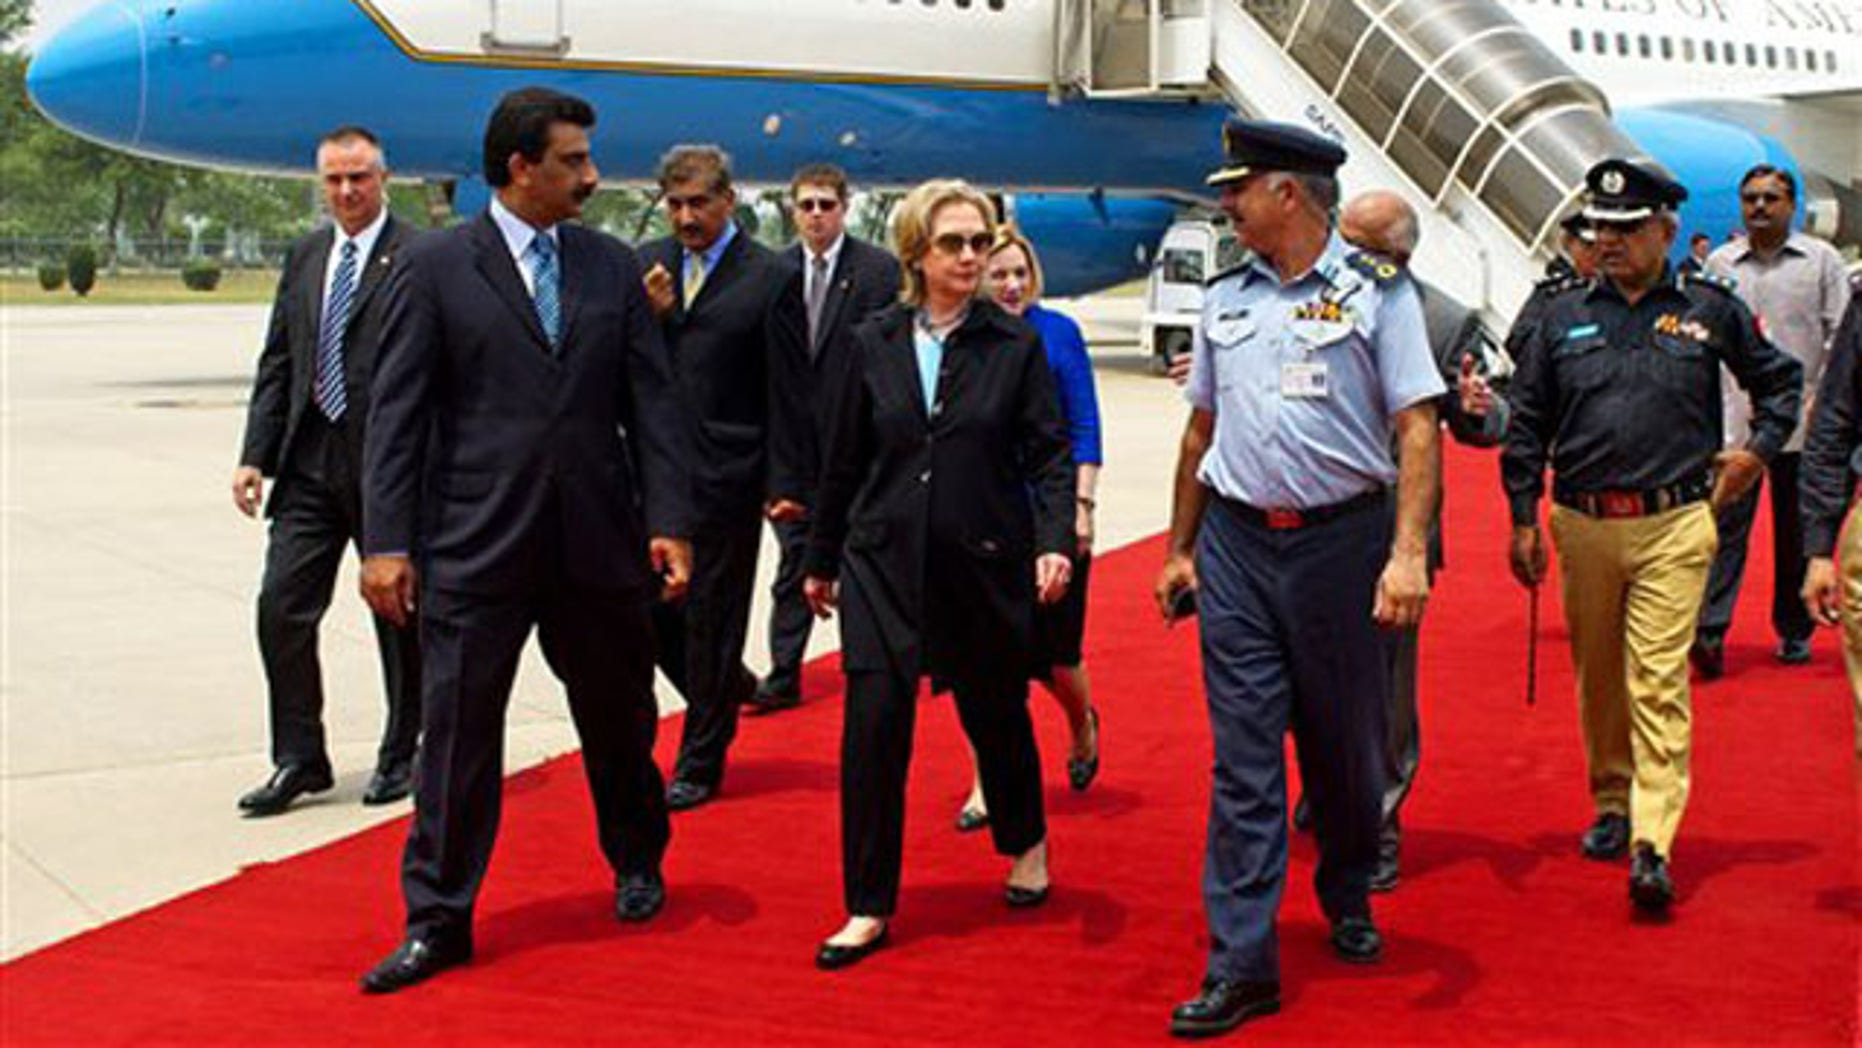 Secretary of State Hillary Clinton, center, walks on the red carpet upon her arrival at PAF Base Chakala in Islamabad July 18. (AP Photo)